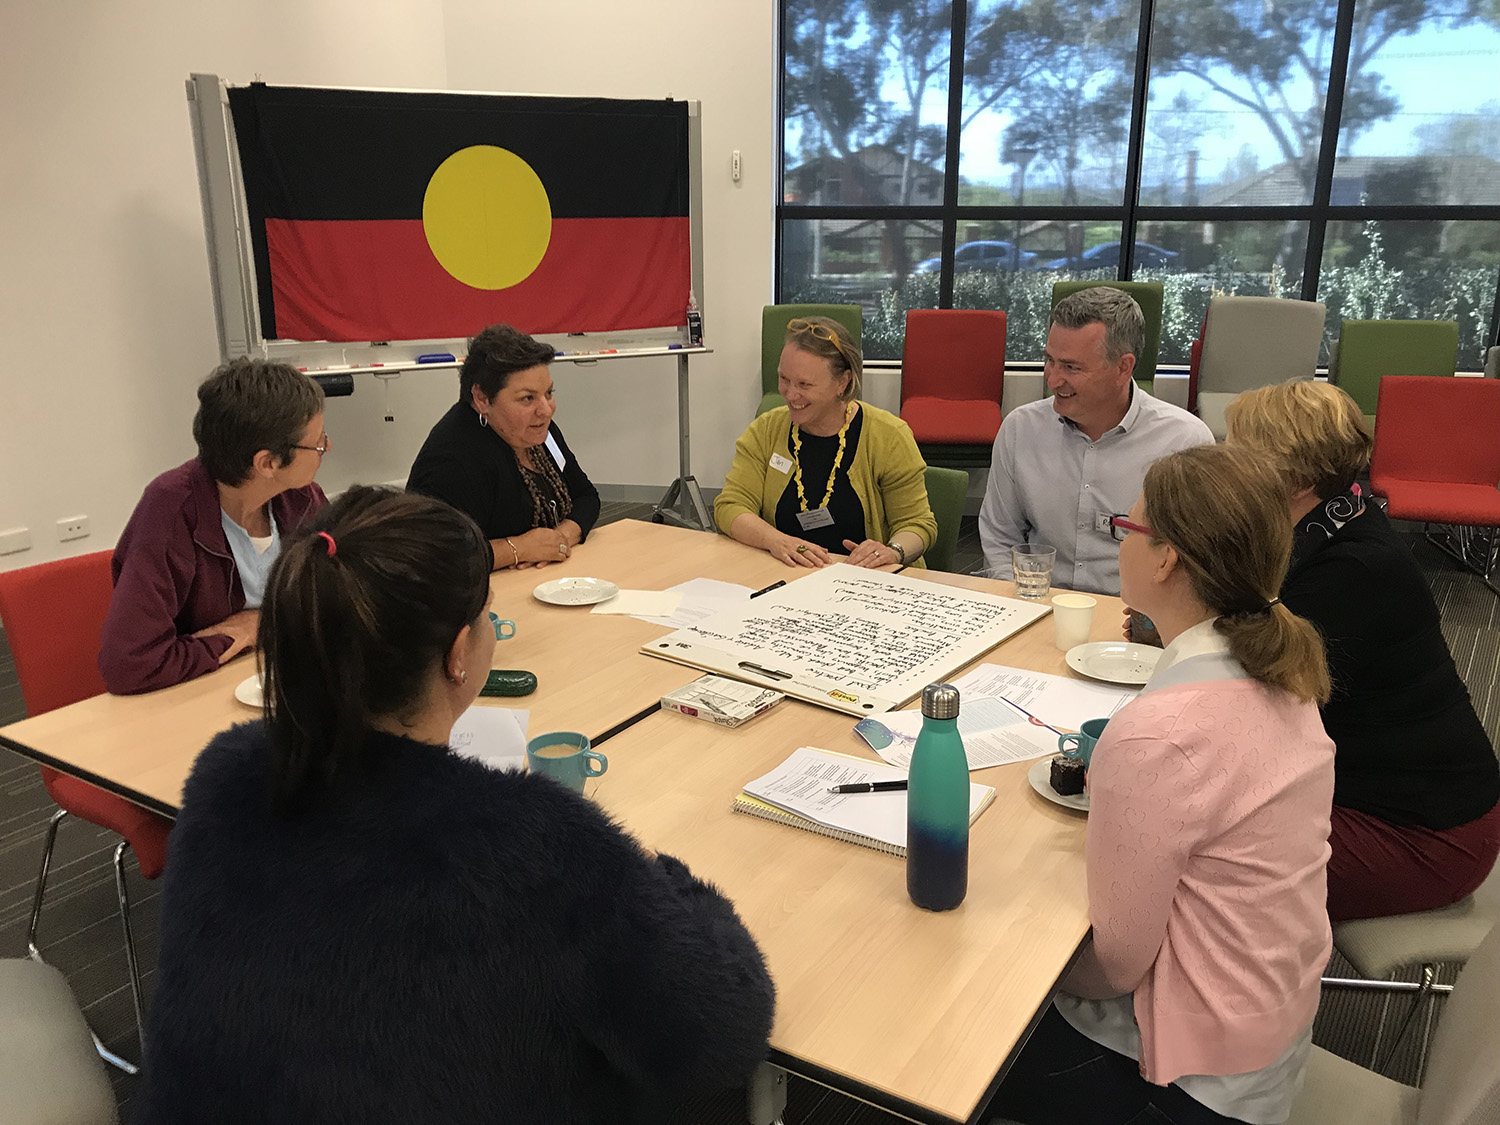 Strategising during the workshop. Photo credit: Robyn McKay